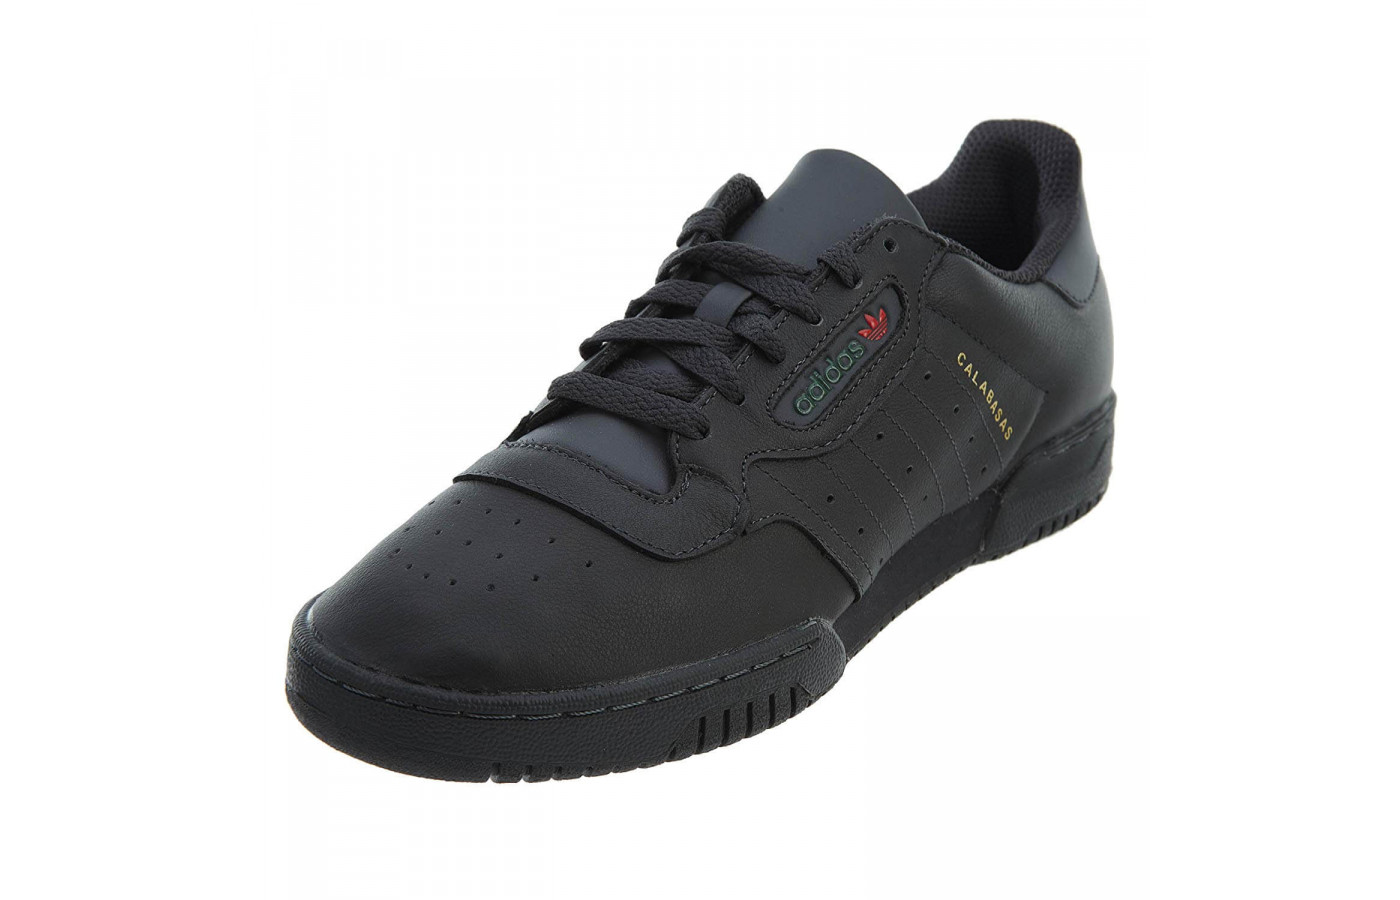 4973ba7ac Adidas Yeezy Powerphase - To Buy or Not in May 2019